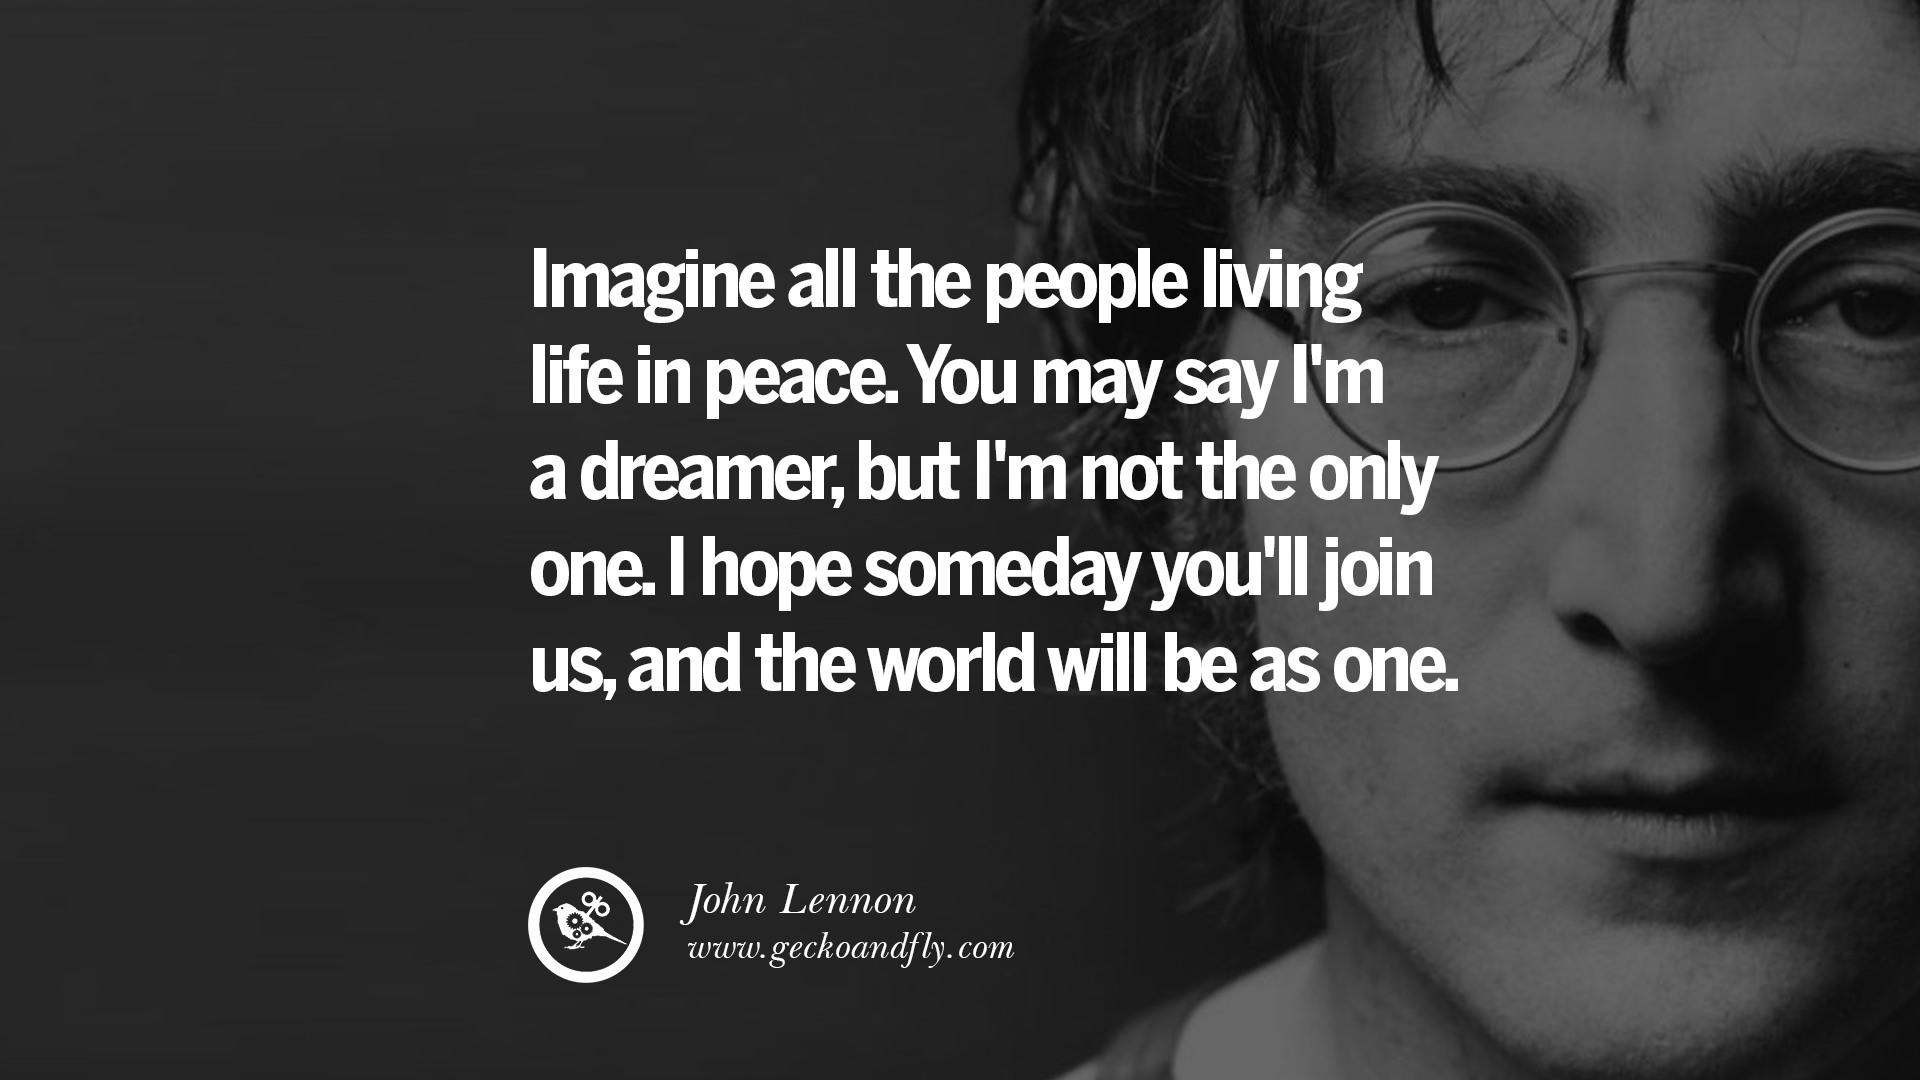 15 John Lennon Quotes On Love, Imagination, Peace And Death